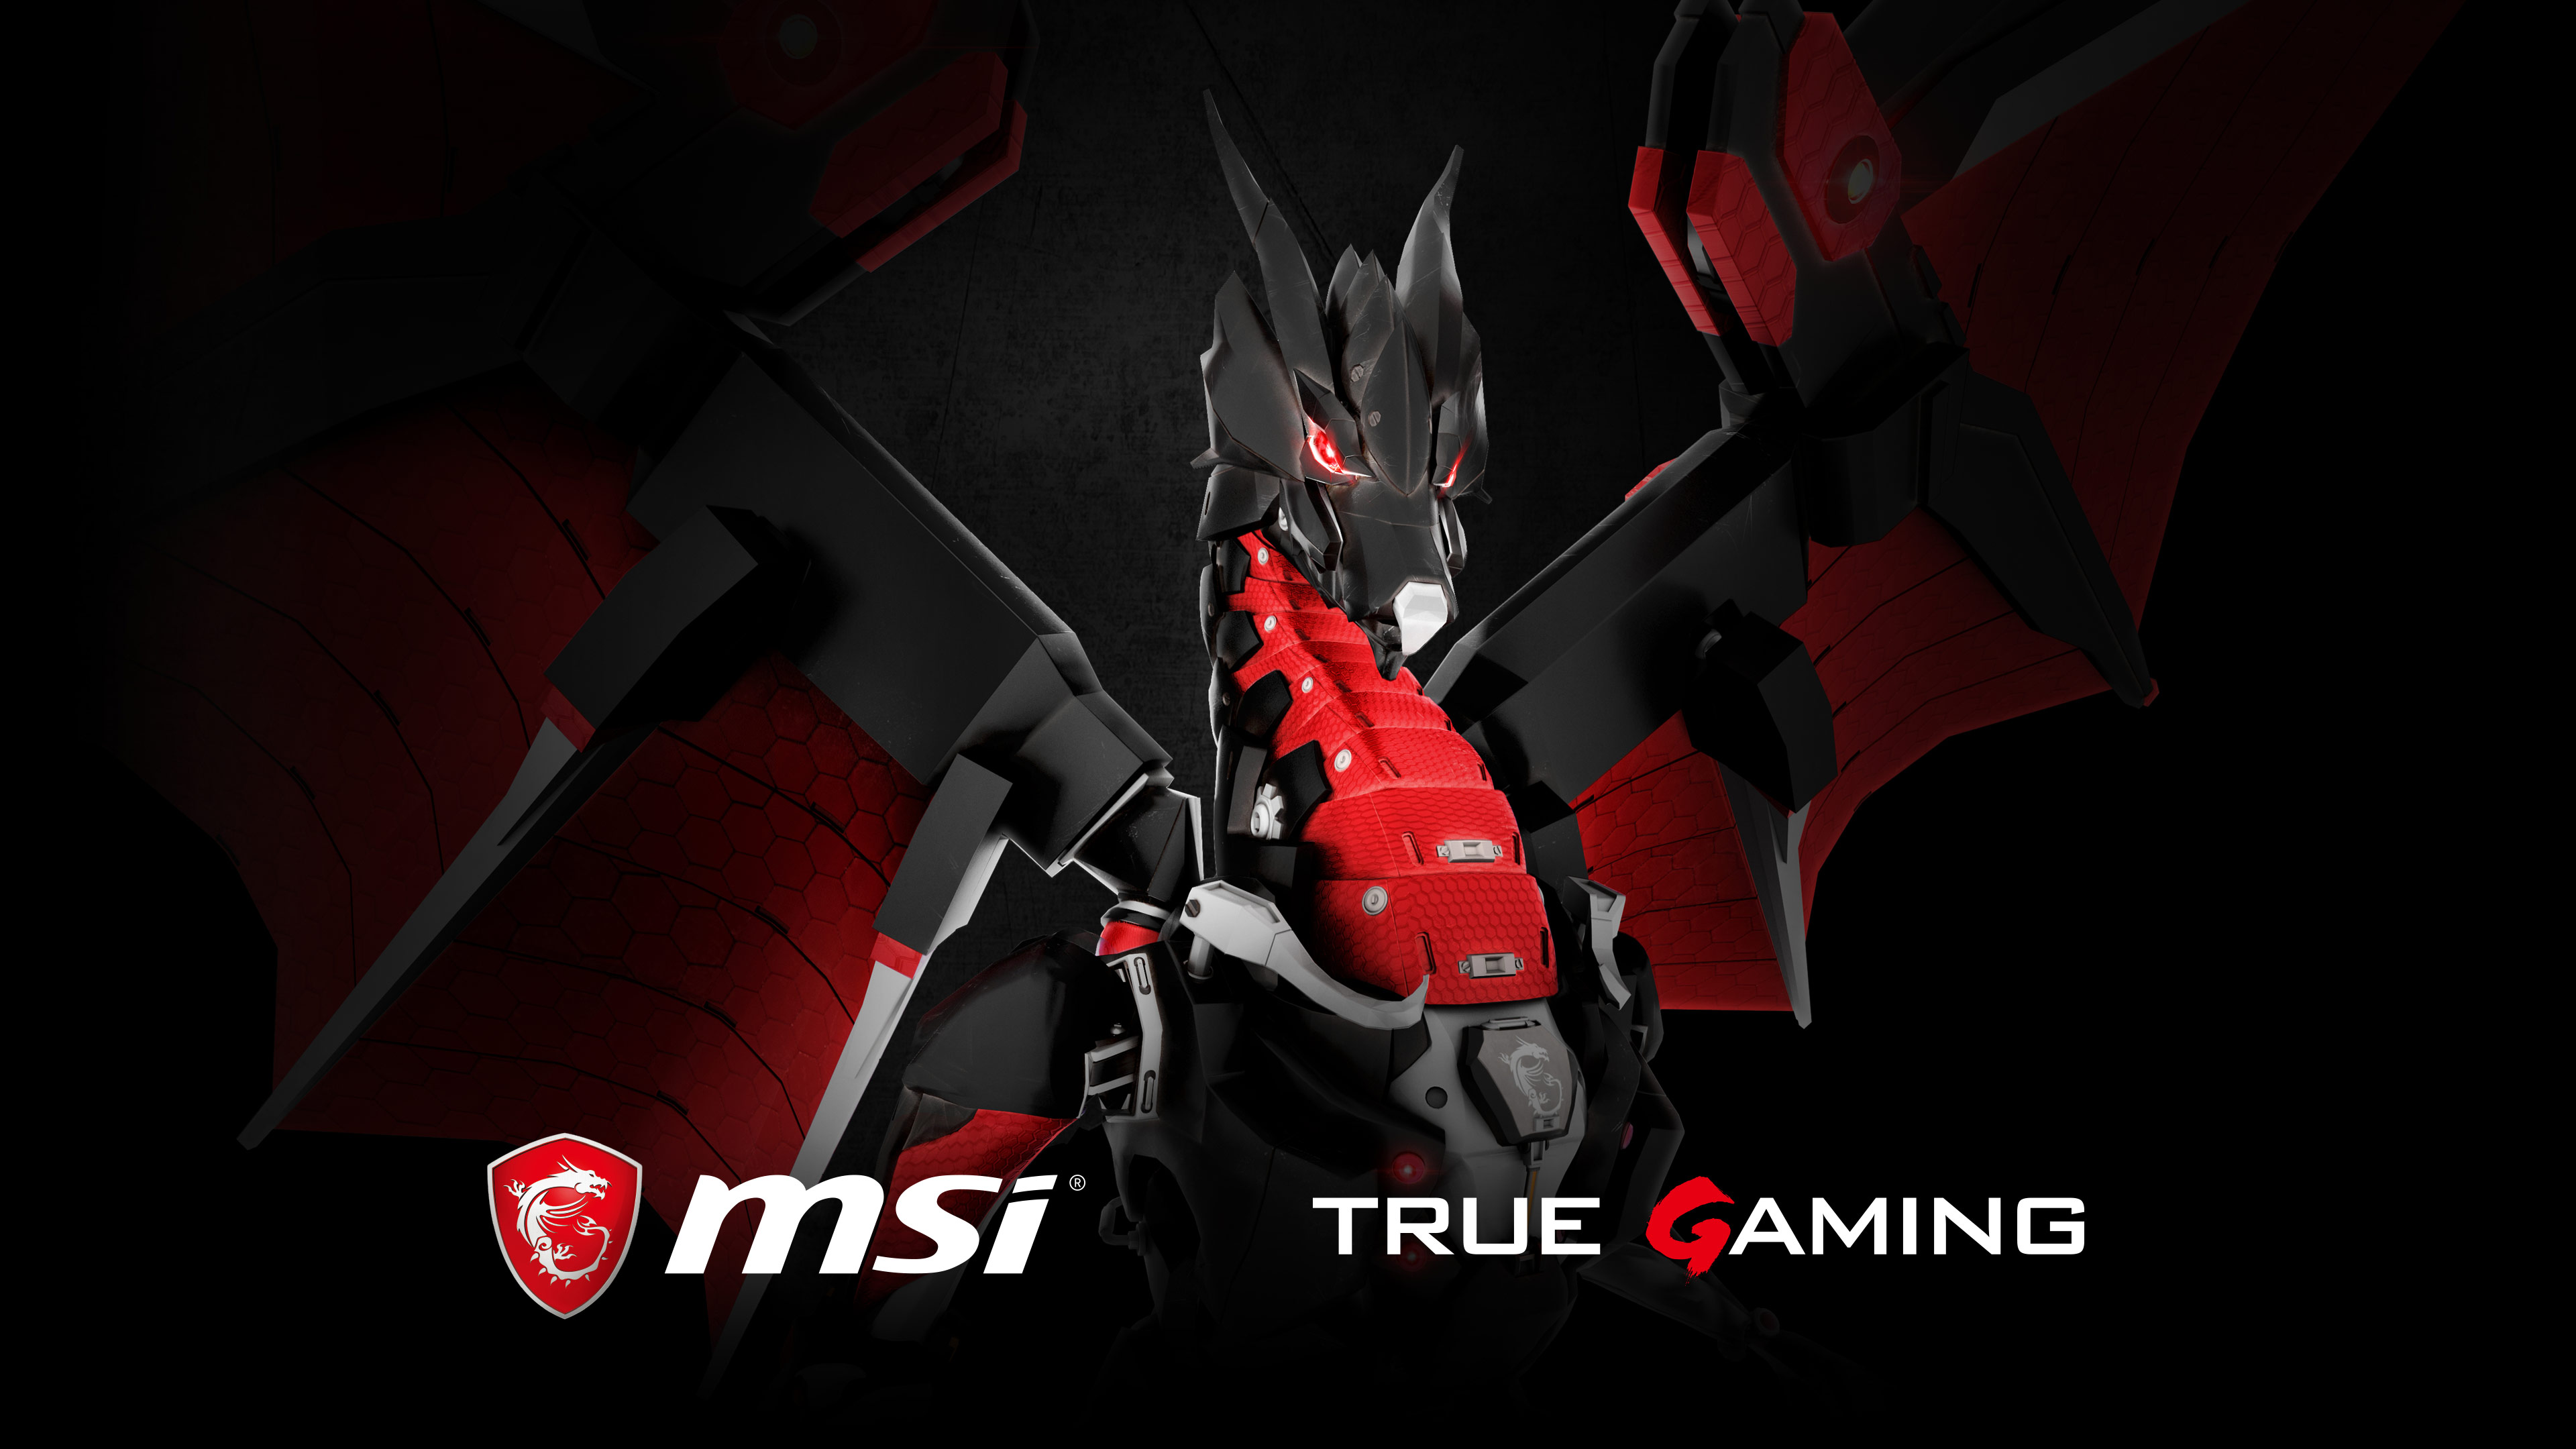 10 New Msi Gaming Series Wallpaper Full Hd 1920 1080 For: MSI Wallpaper 30